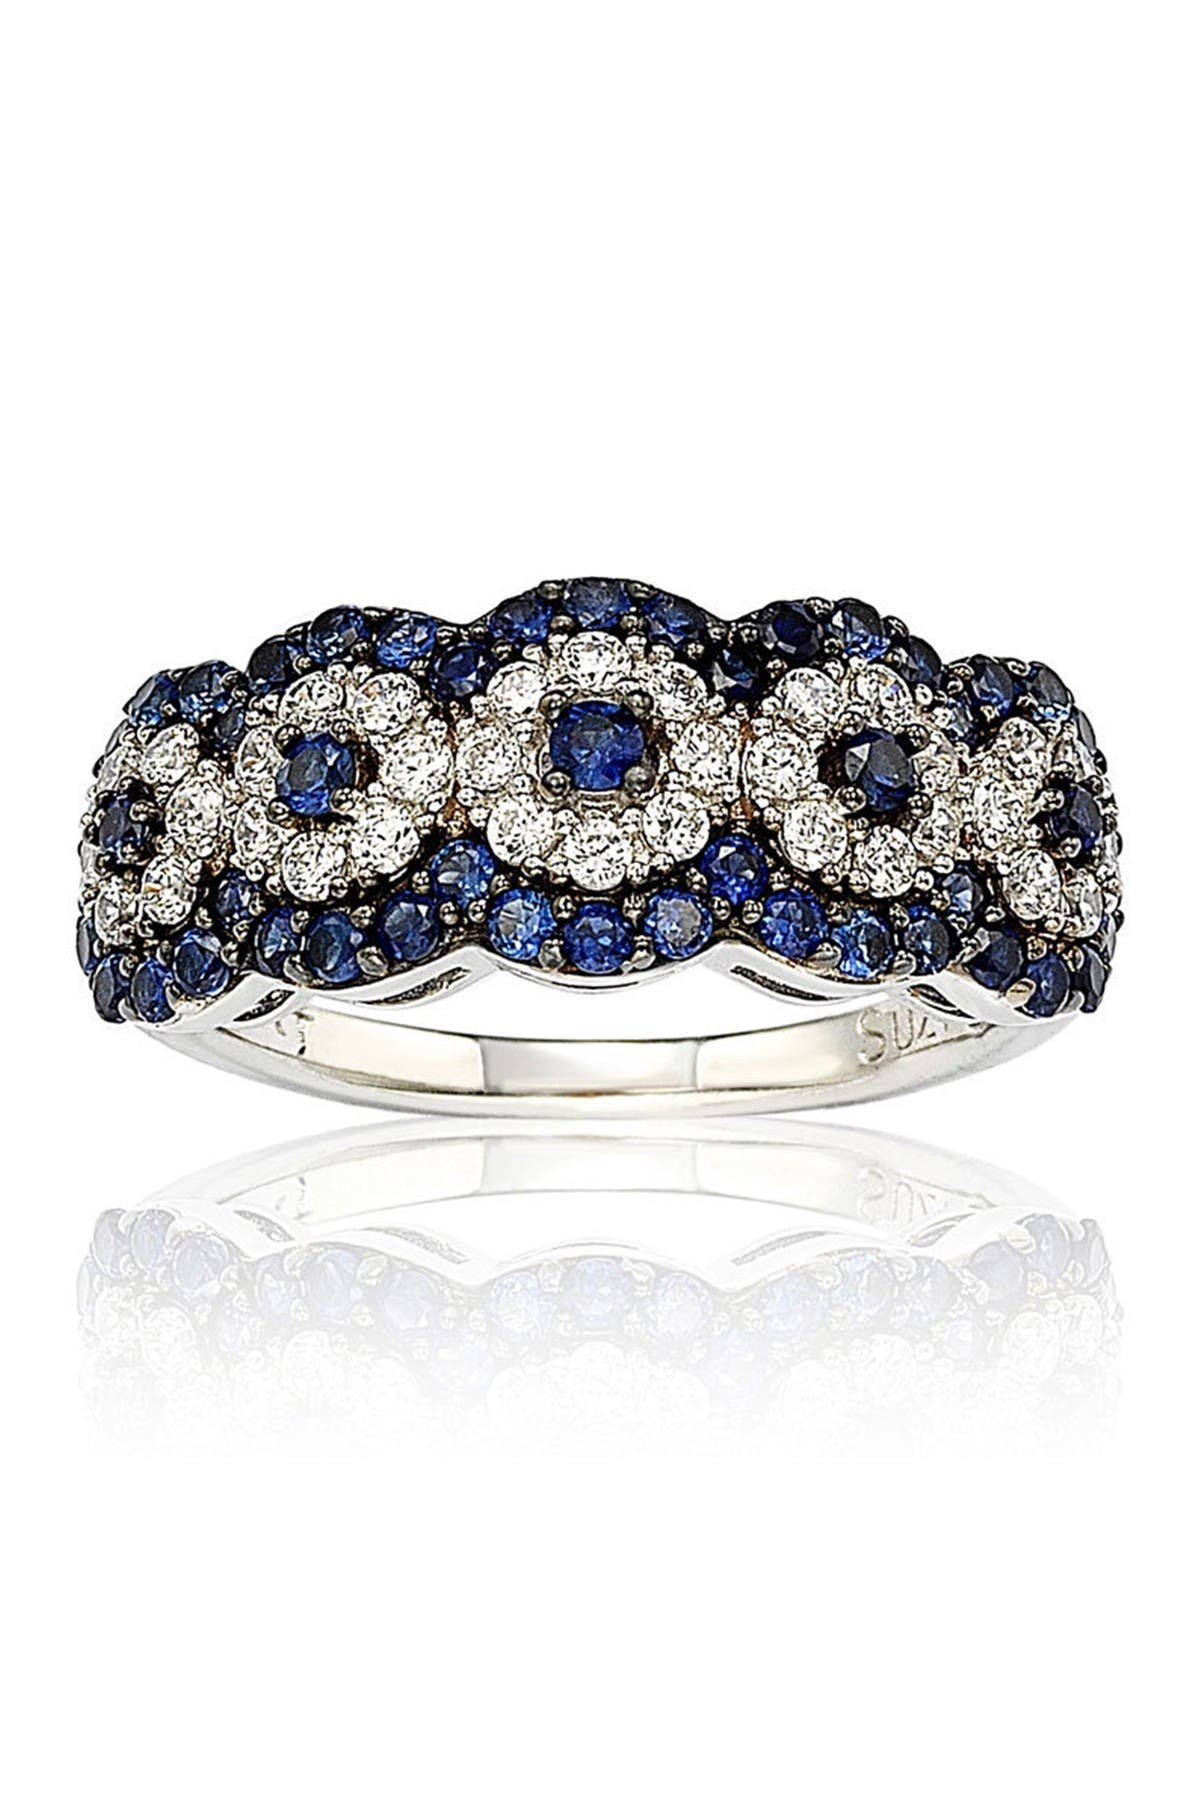 Image of Suzy Levian Two-Tone Blue Sapphire, Created White Sapphire & Brown Diamond Ring